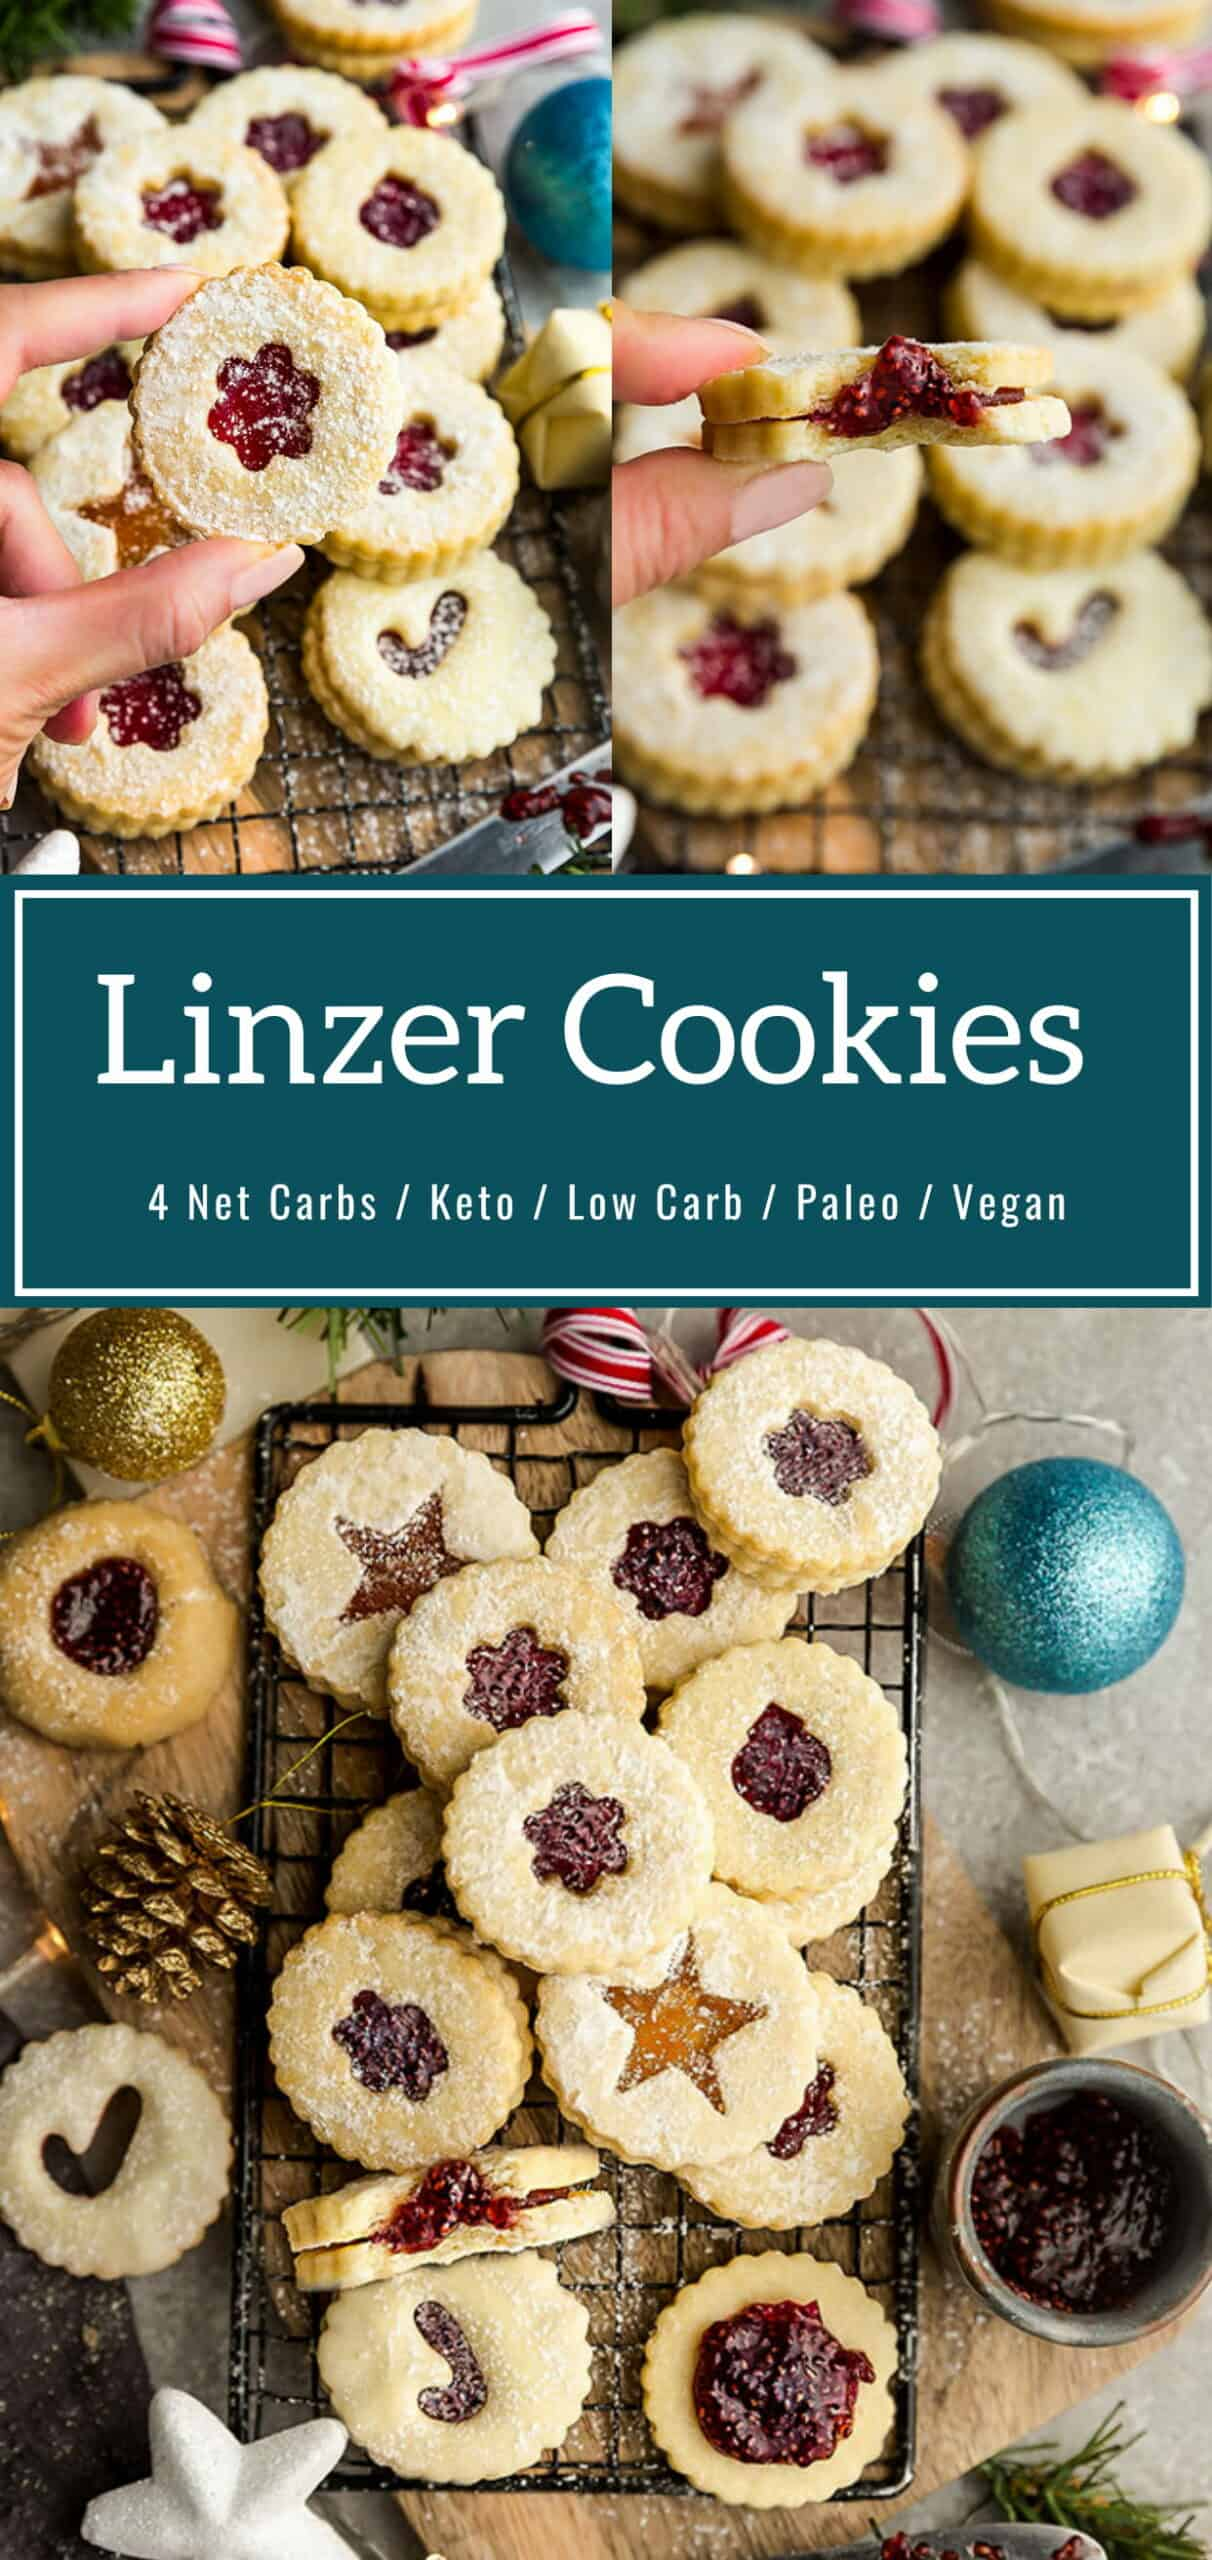 Linzer Cookies Recipe